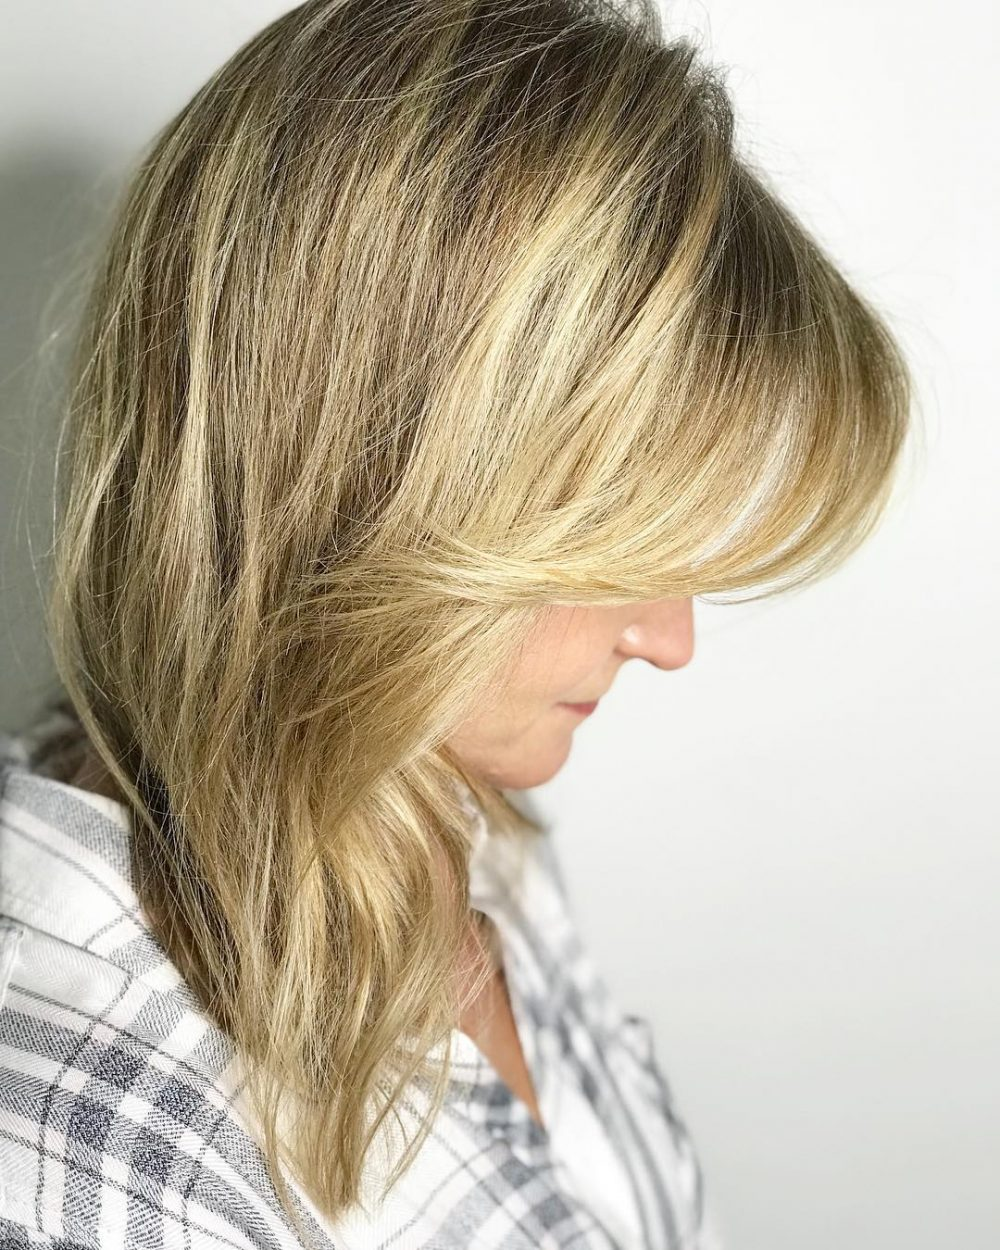 Customizeable Side-Swept Bangs hairstyle